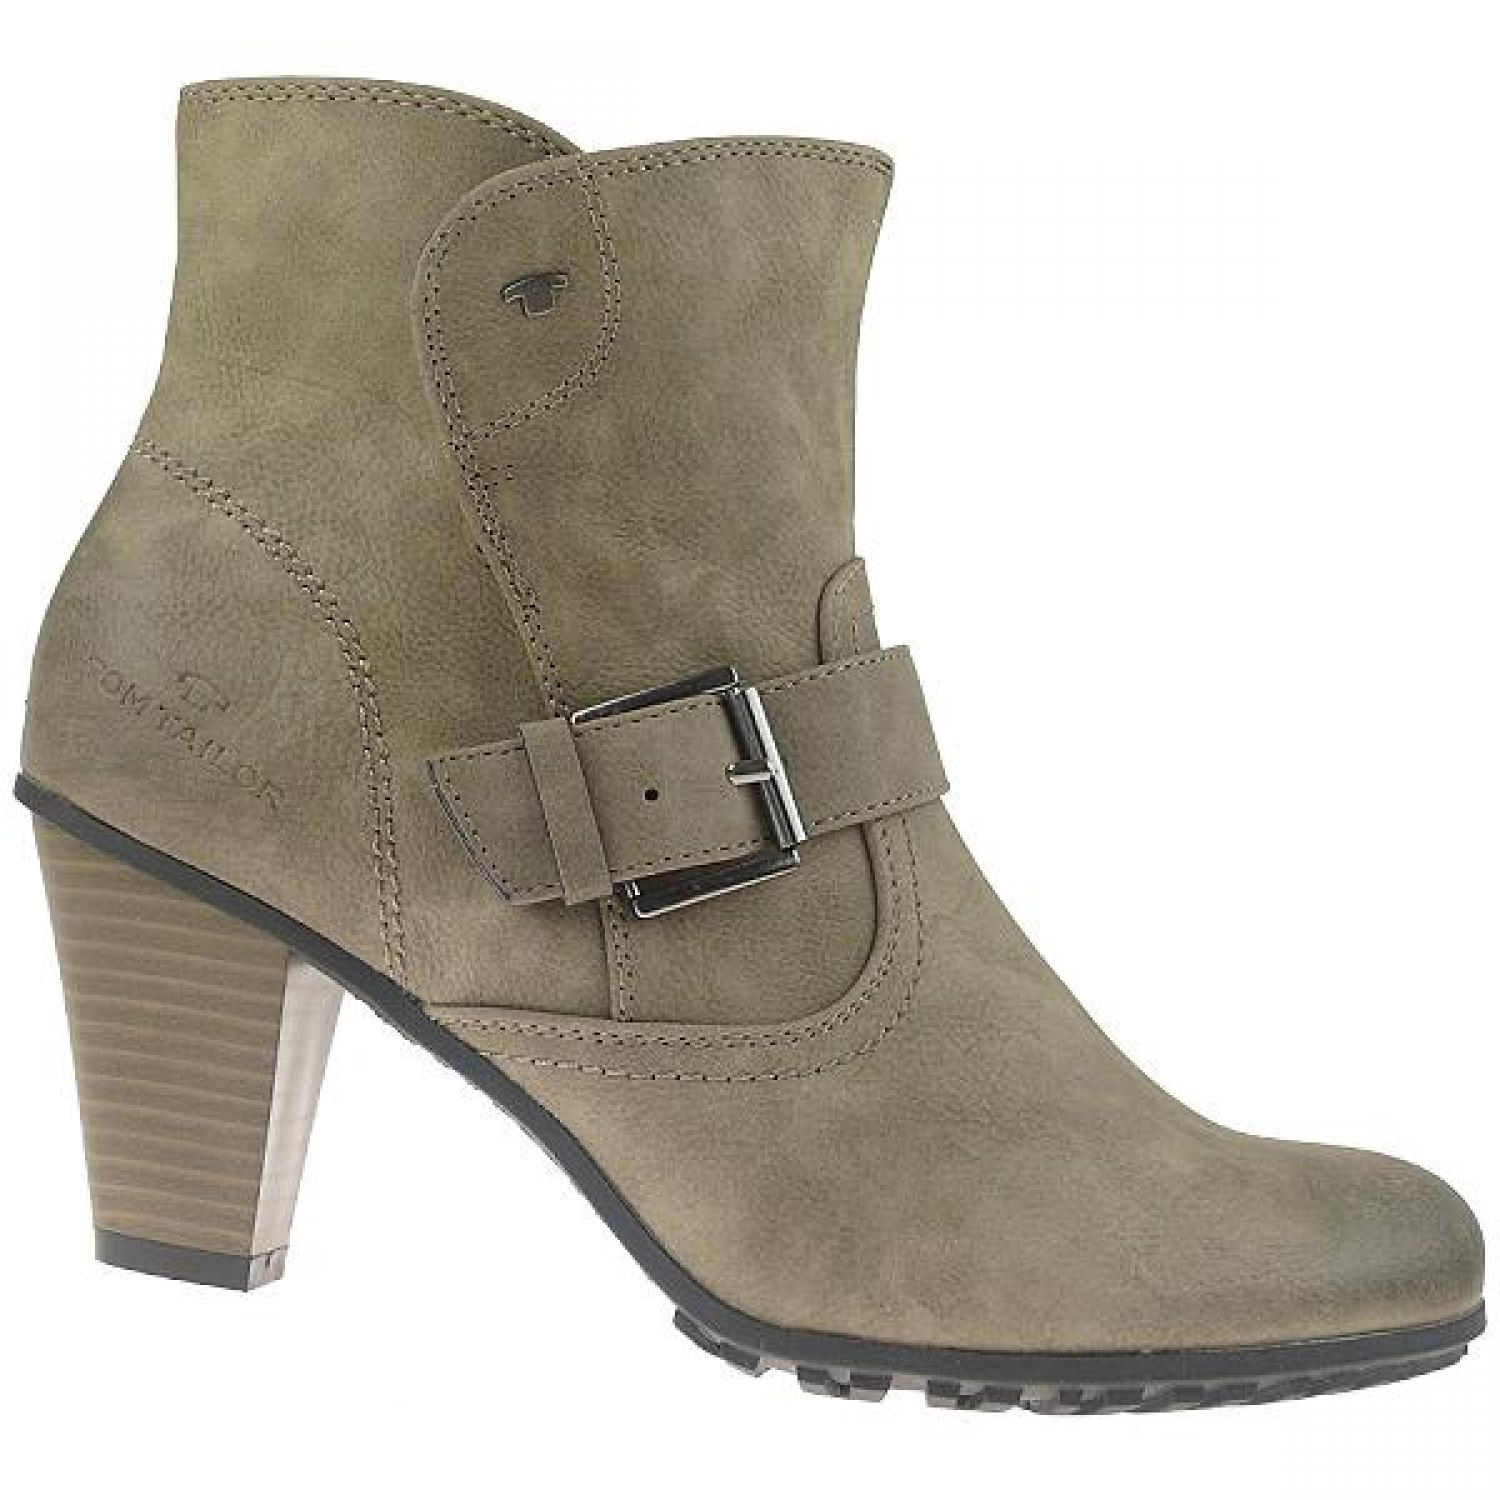 TOM TAILOR Ankle Boot Trichterabsatz Farbe mud Gr.37 42 | eBay